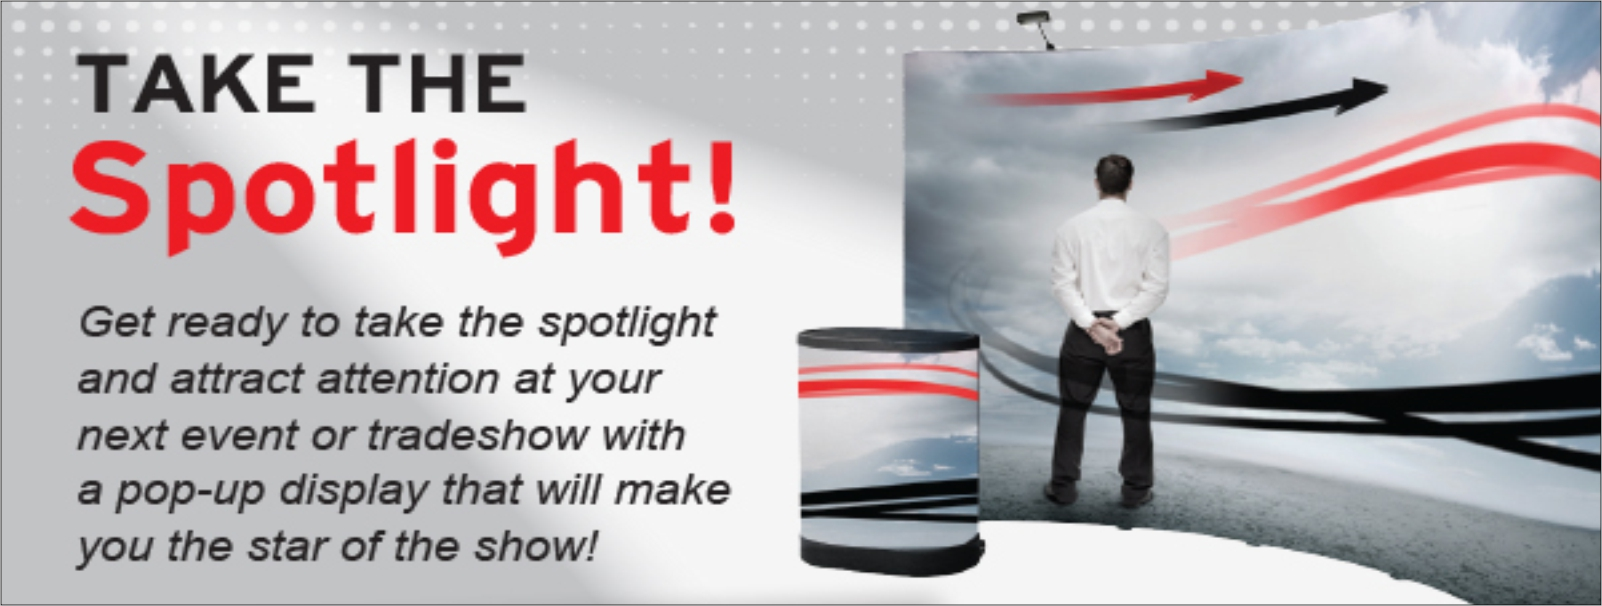 TAKE THE SPOTLIGHT TRADESHOW SLIDERS 2